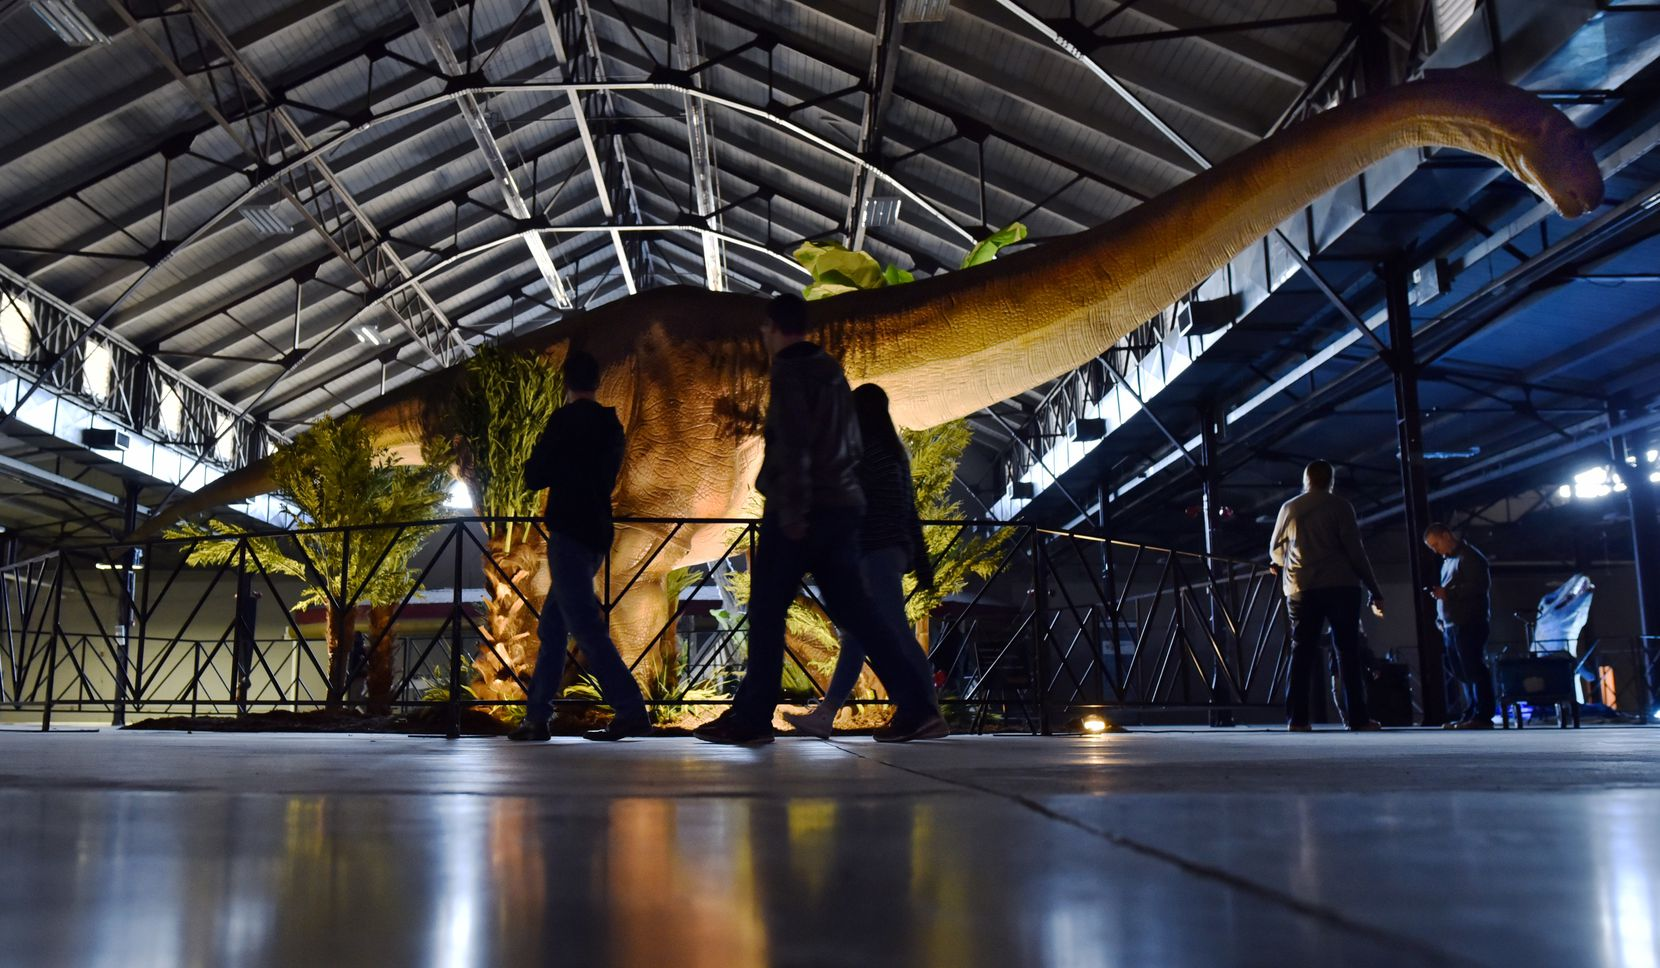 """Jurassic Quest,"" featuring more than 80 animatronic dinosaurs plus bounce houses, fossil digs, a dino petting zoo, is back at Fair Park this weekend."